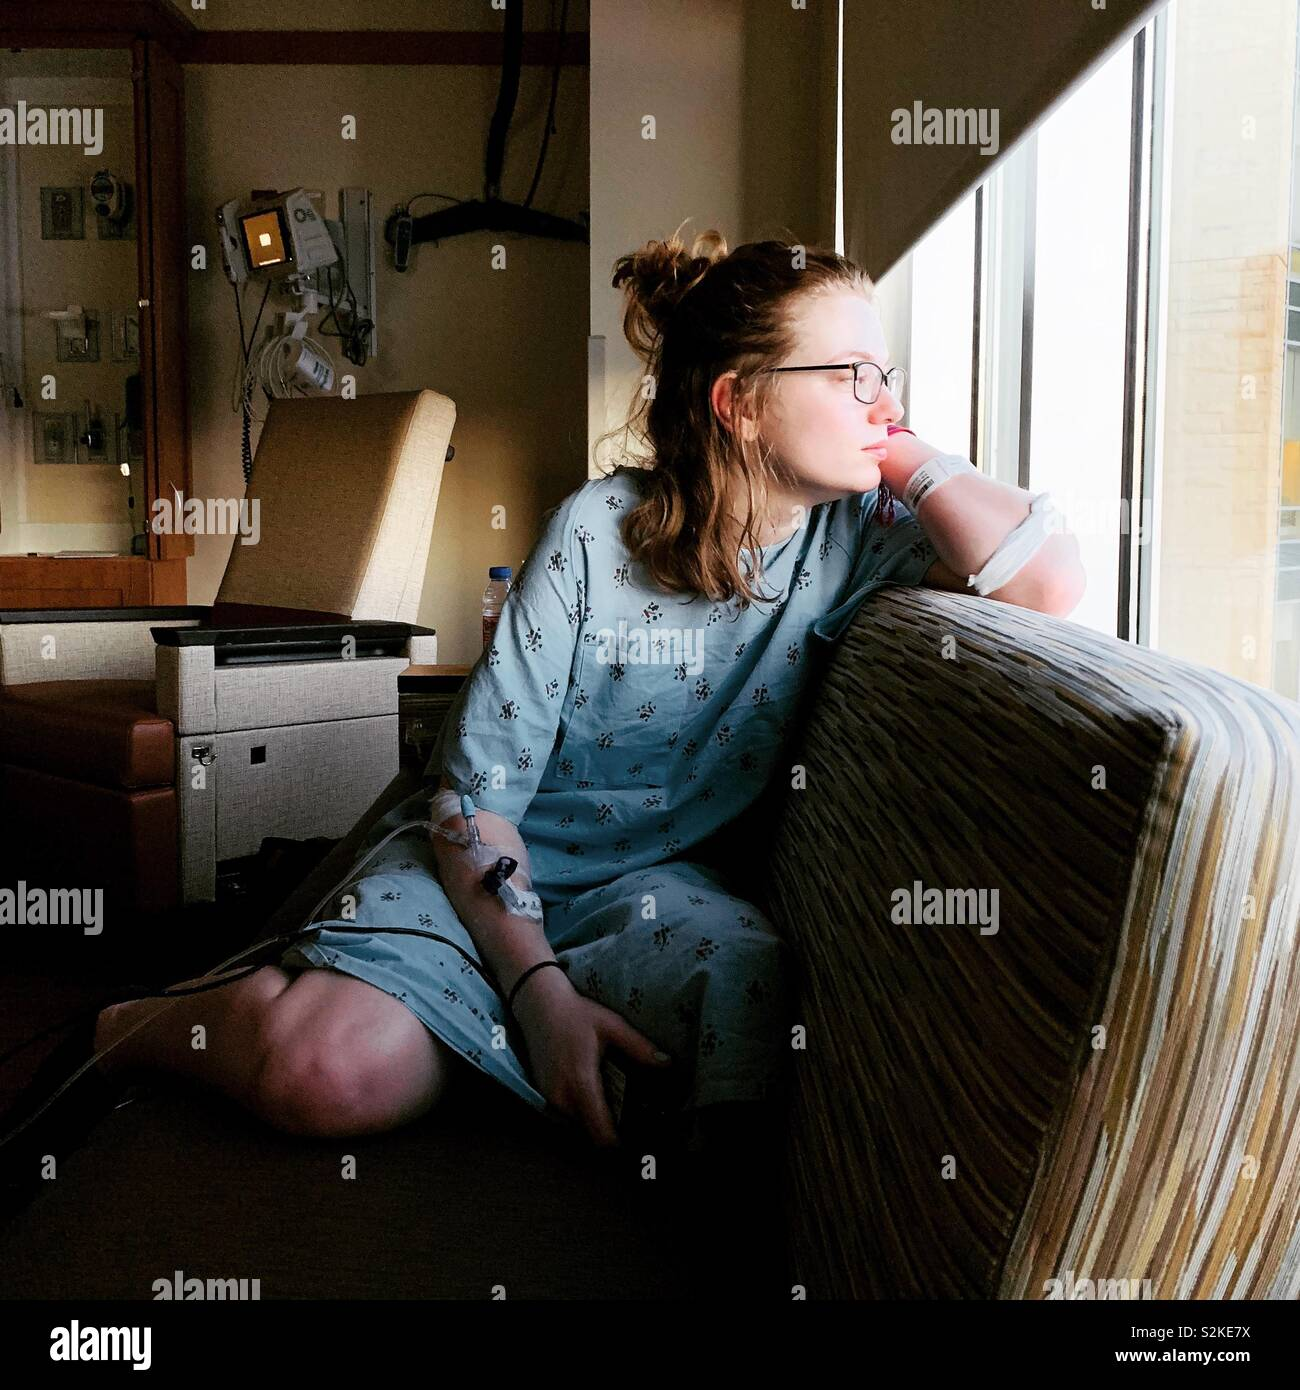 Girl in a hospital looking out window Stock Photo